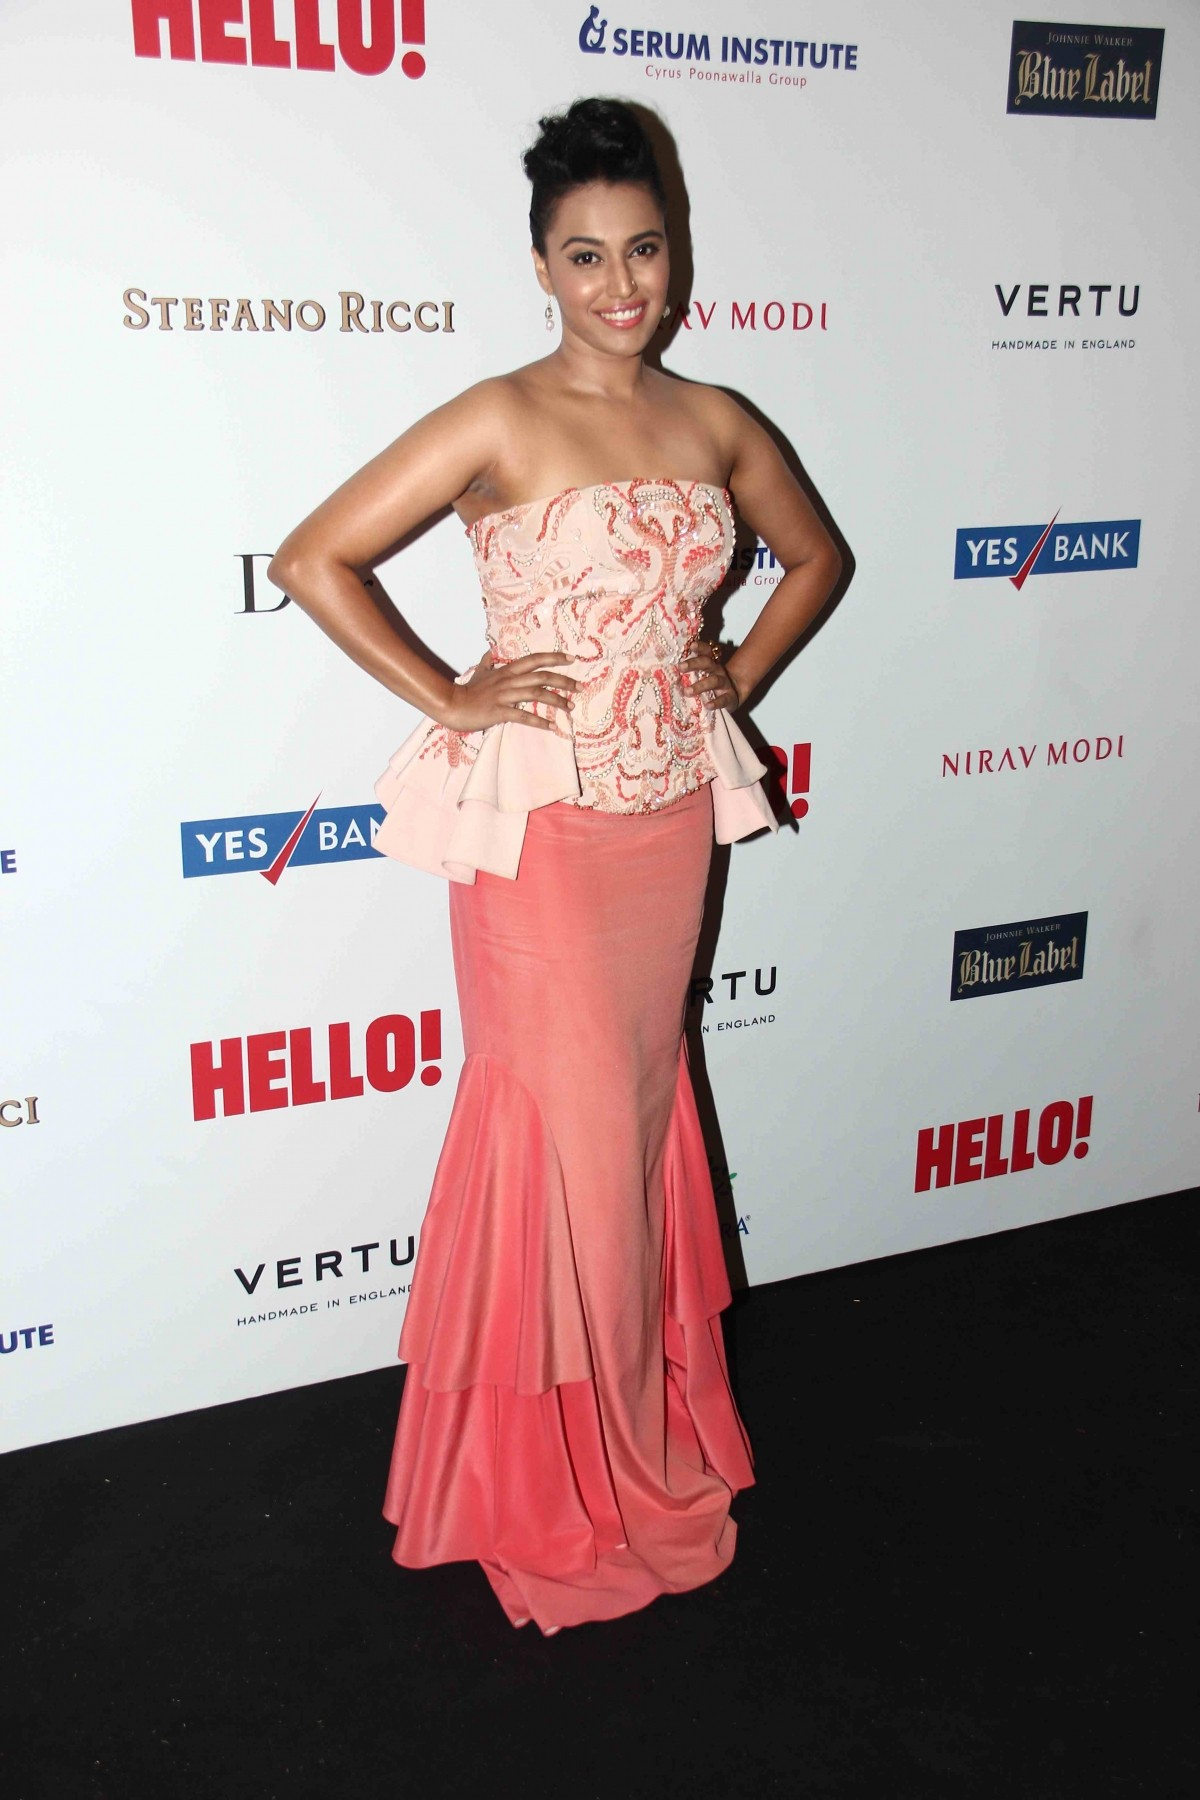 Hello! Hall of Fame Awards 2014: Worst Dressed Celebs